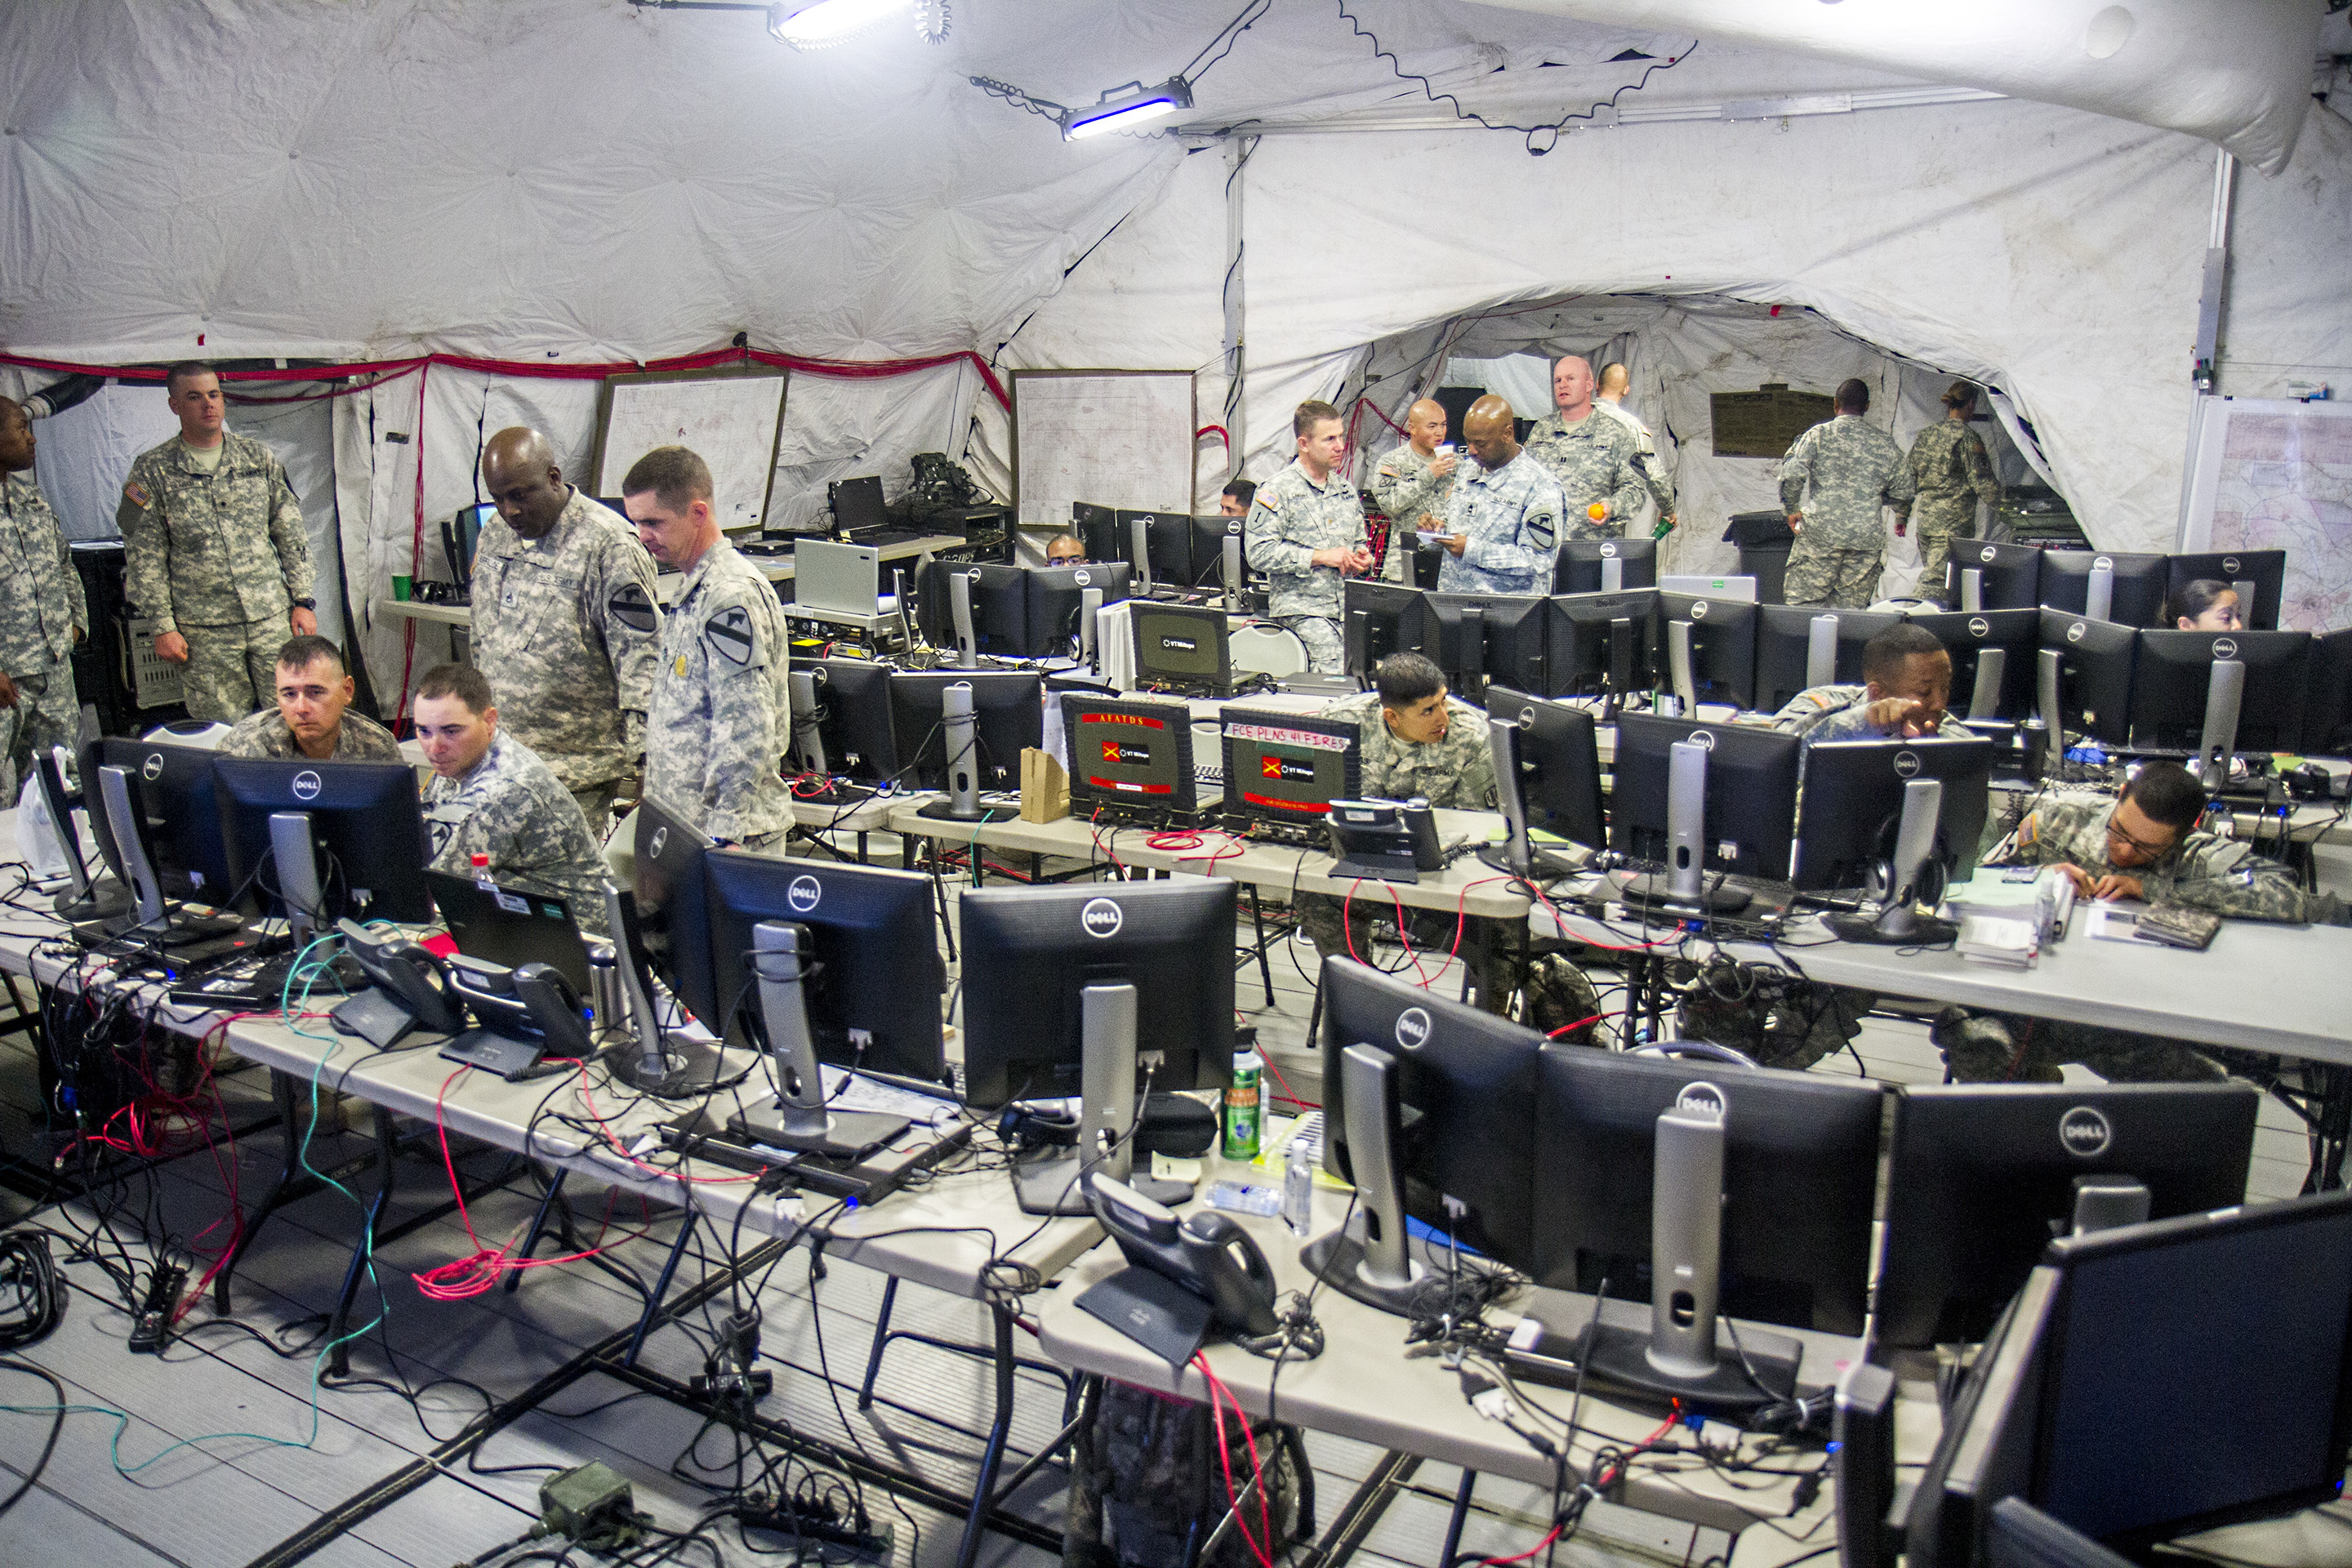 A new network approach is changing how the Army does business